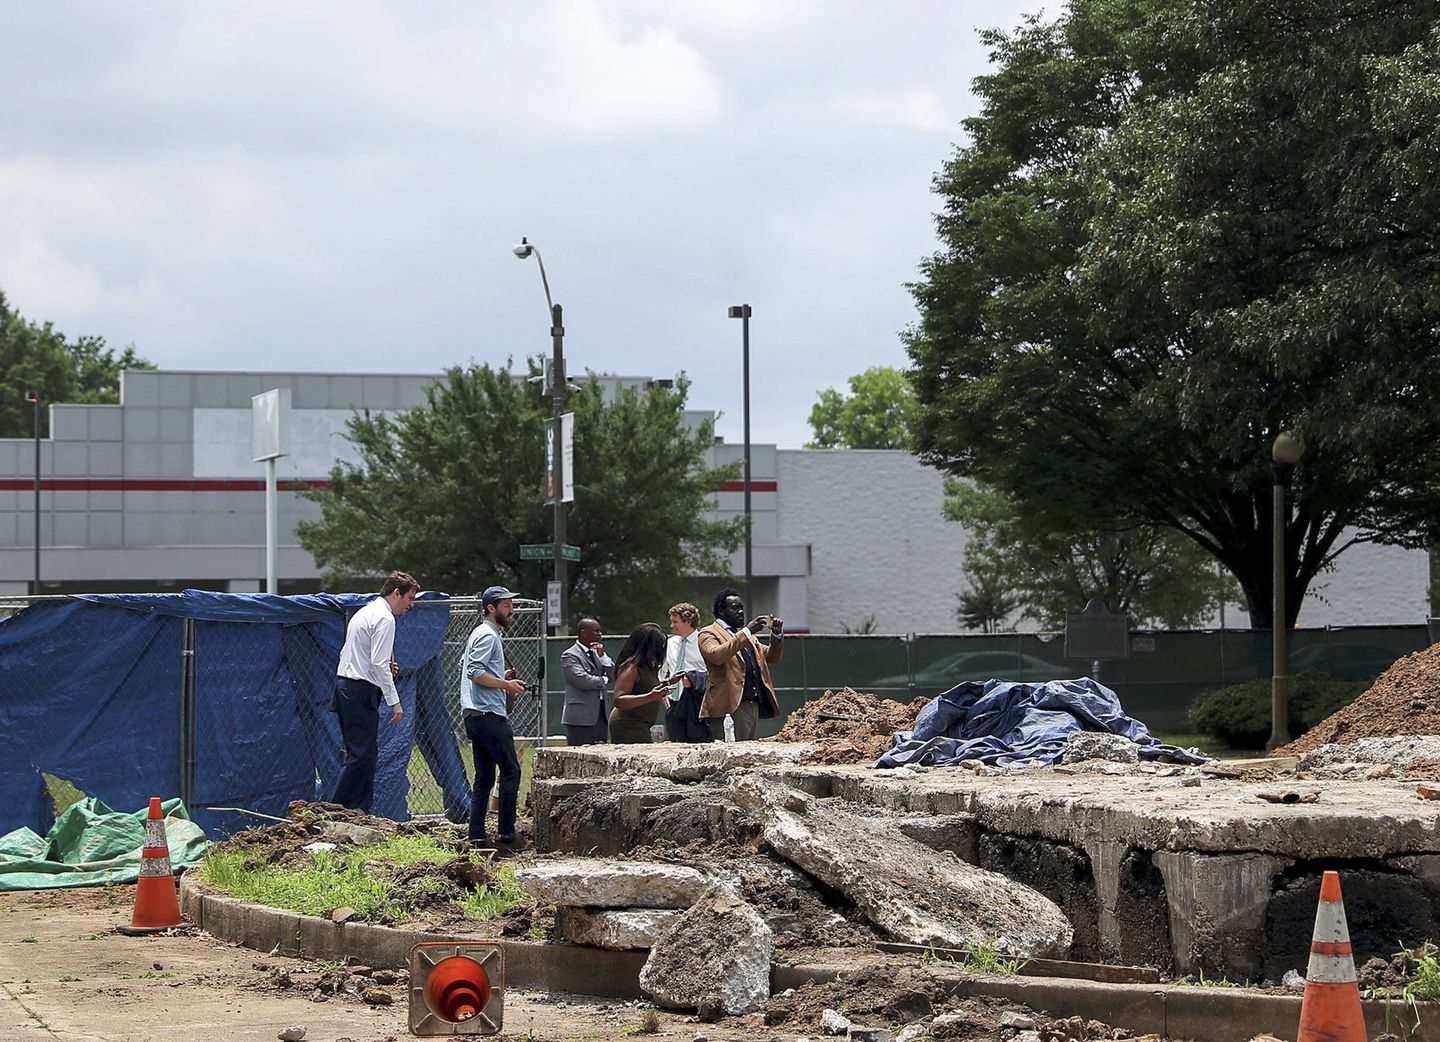 Remains of Confederate general and KKK leader Nathan Bedford Forrest removed from Memphis park